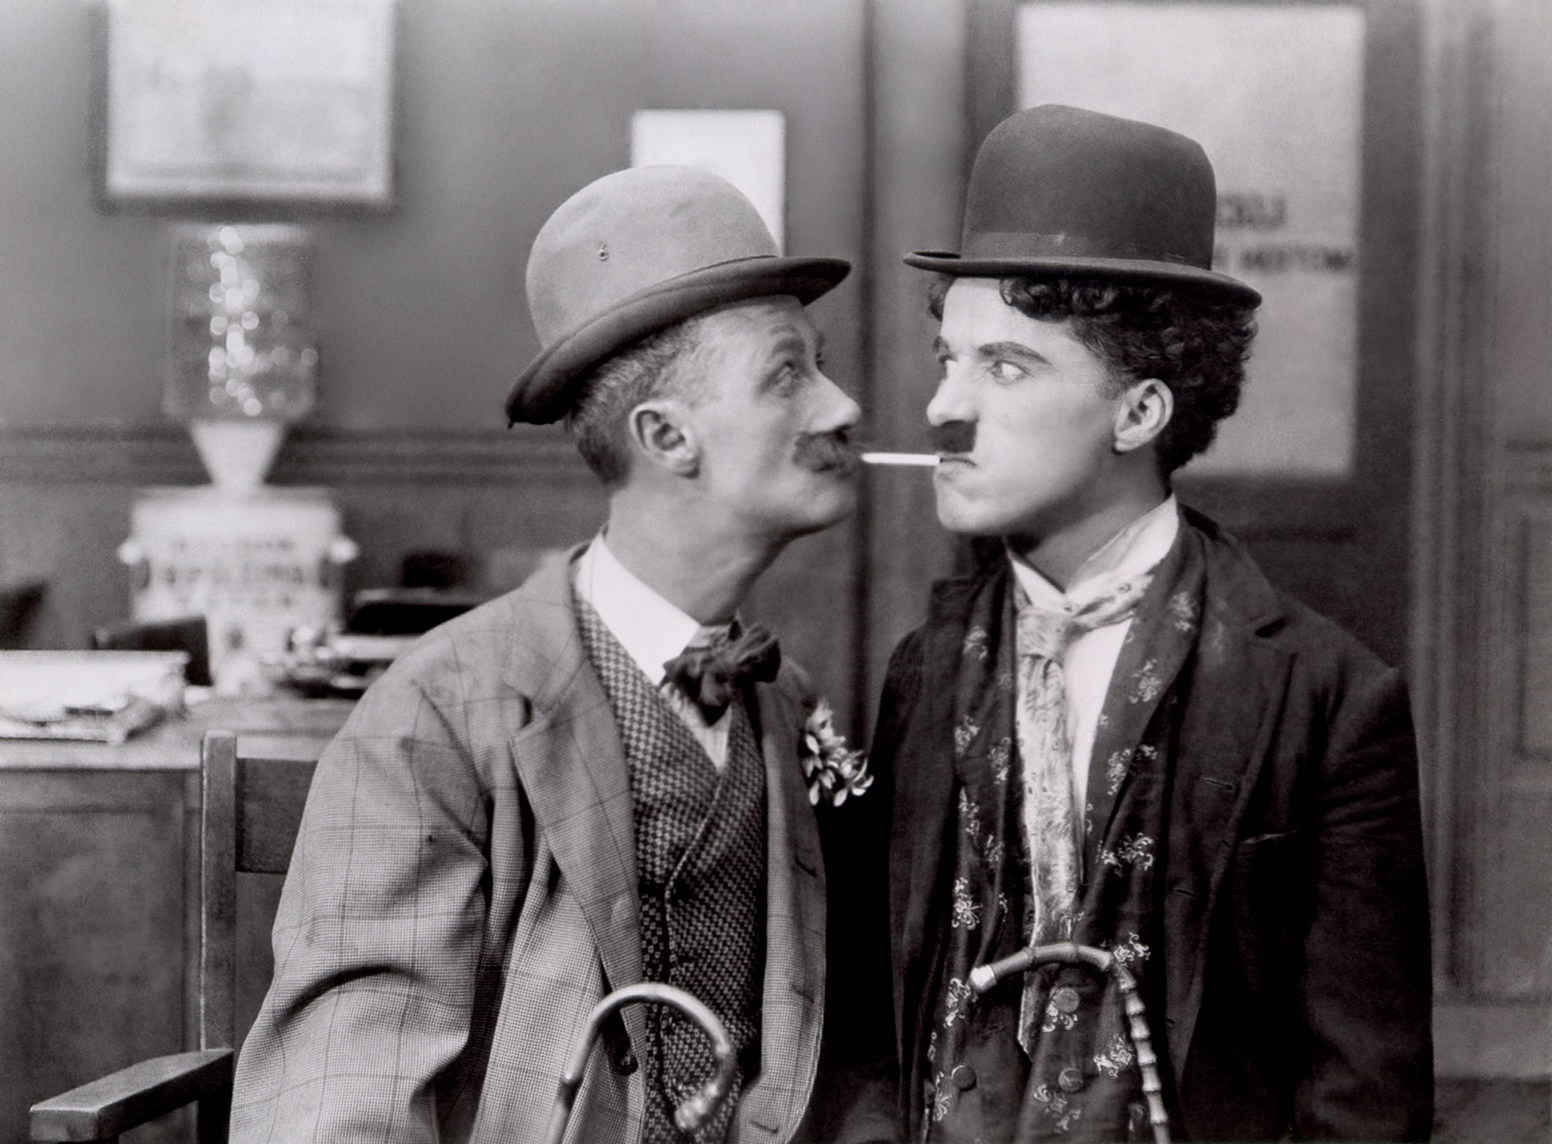 Chaplin with Ben Turpin, His New Job - 1914